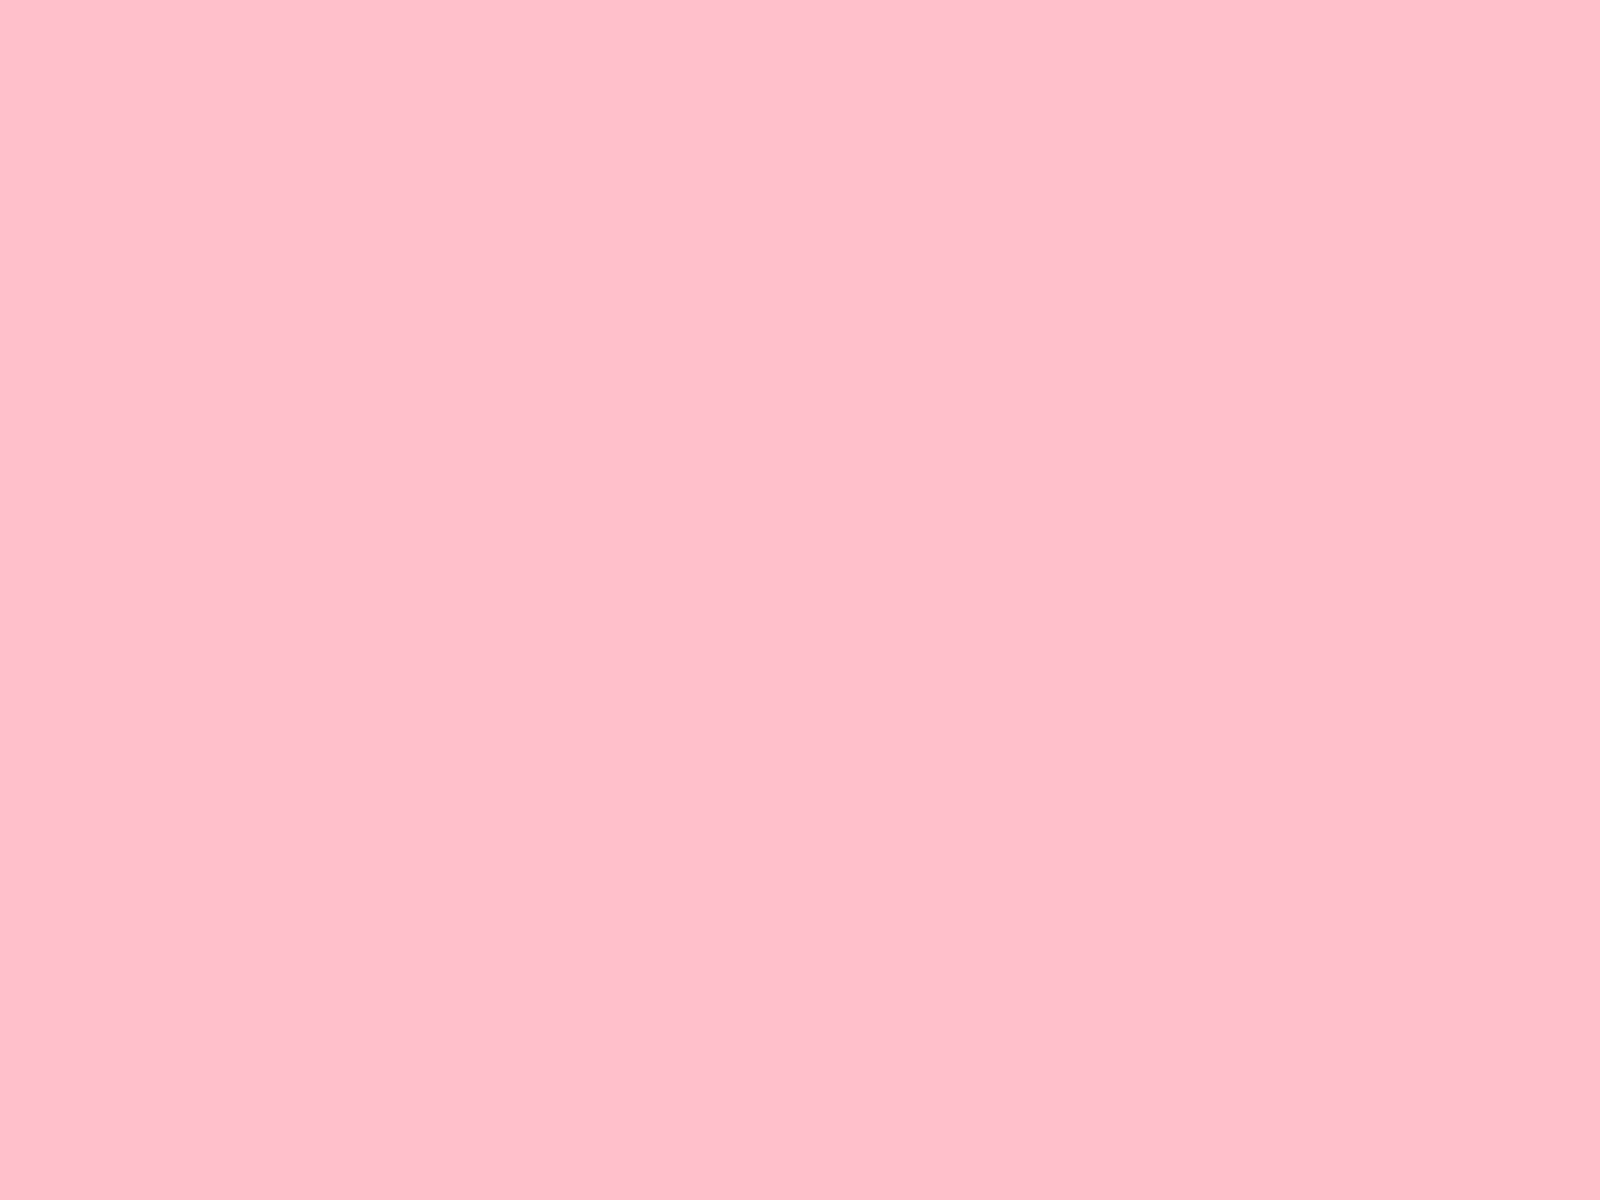 1600x1200 Pink Solid Color Background